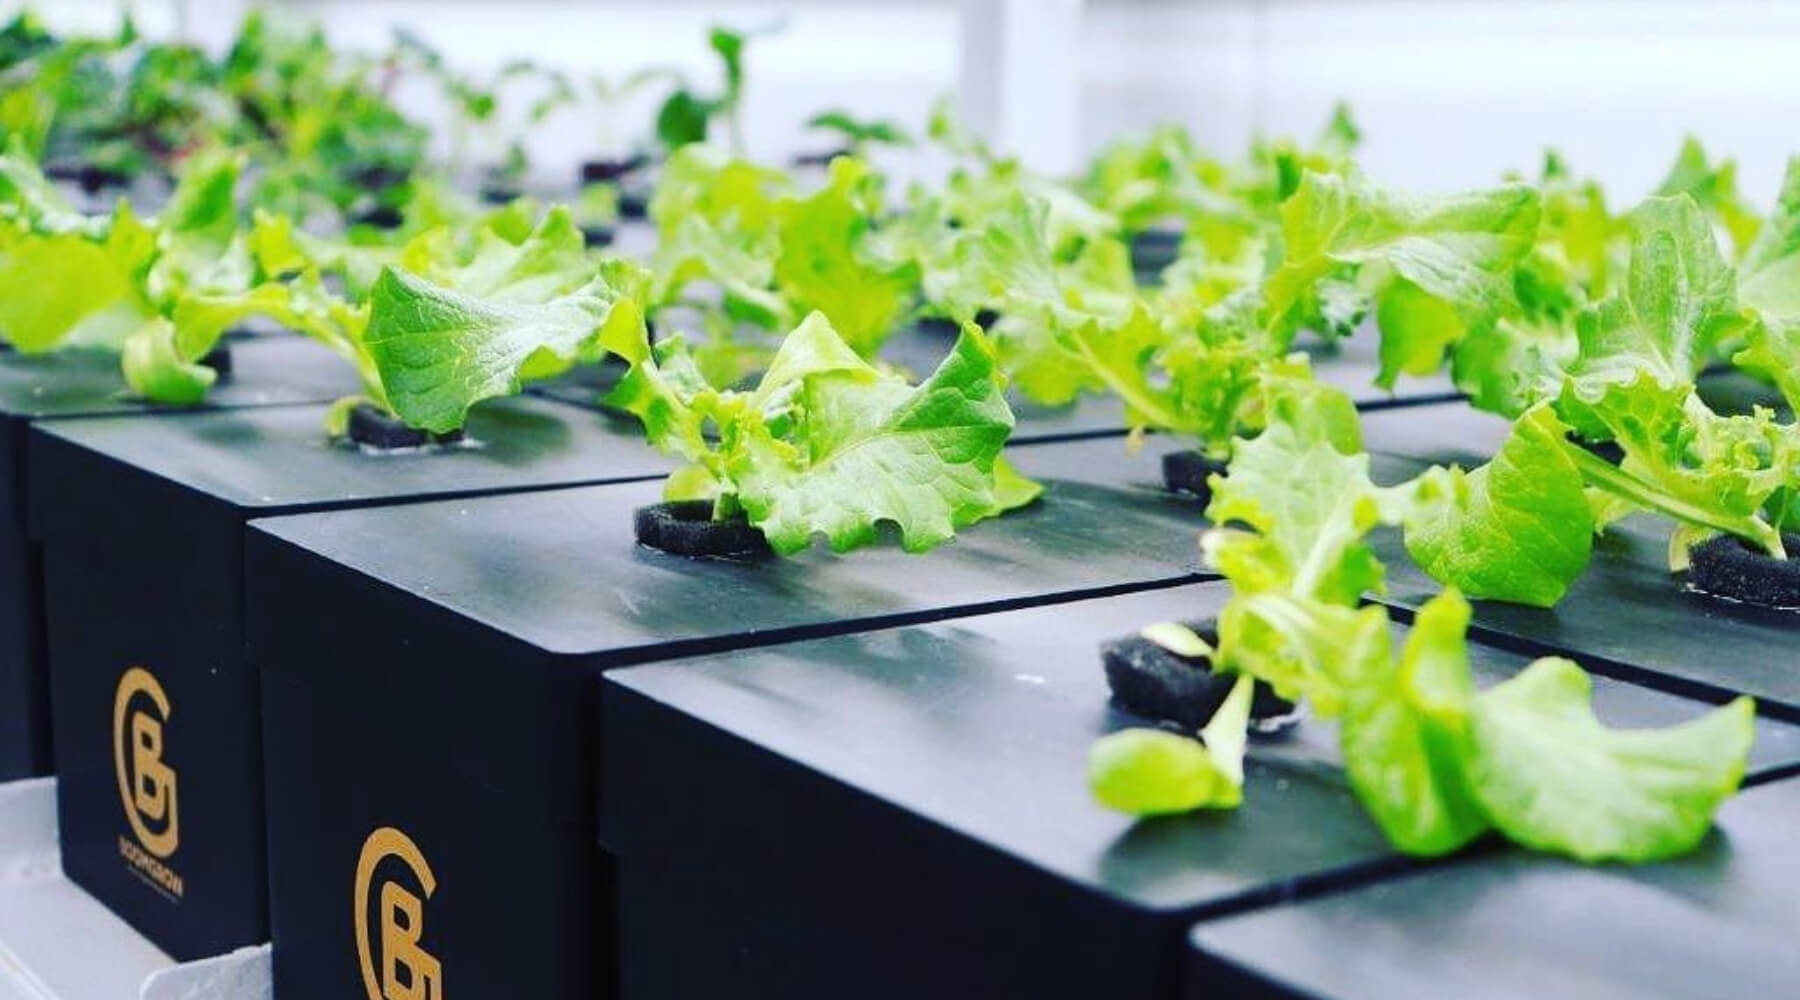 bloomthis-sapot-lokal-9-local-malaysian-brands-we-love-2021-05-boom-grow-sustainably-grown-clean-greens